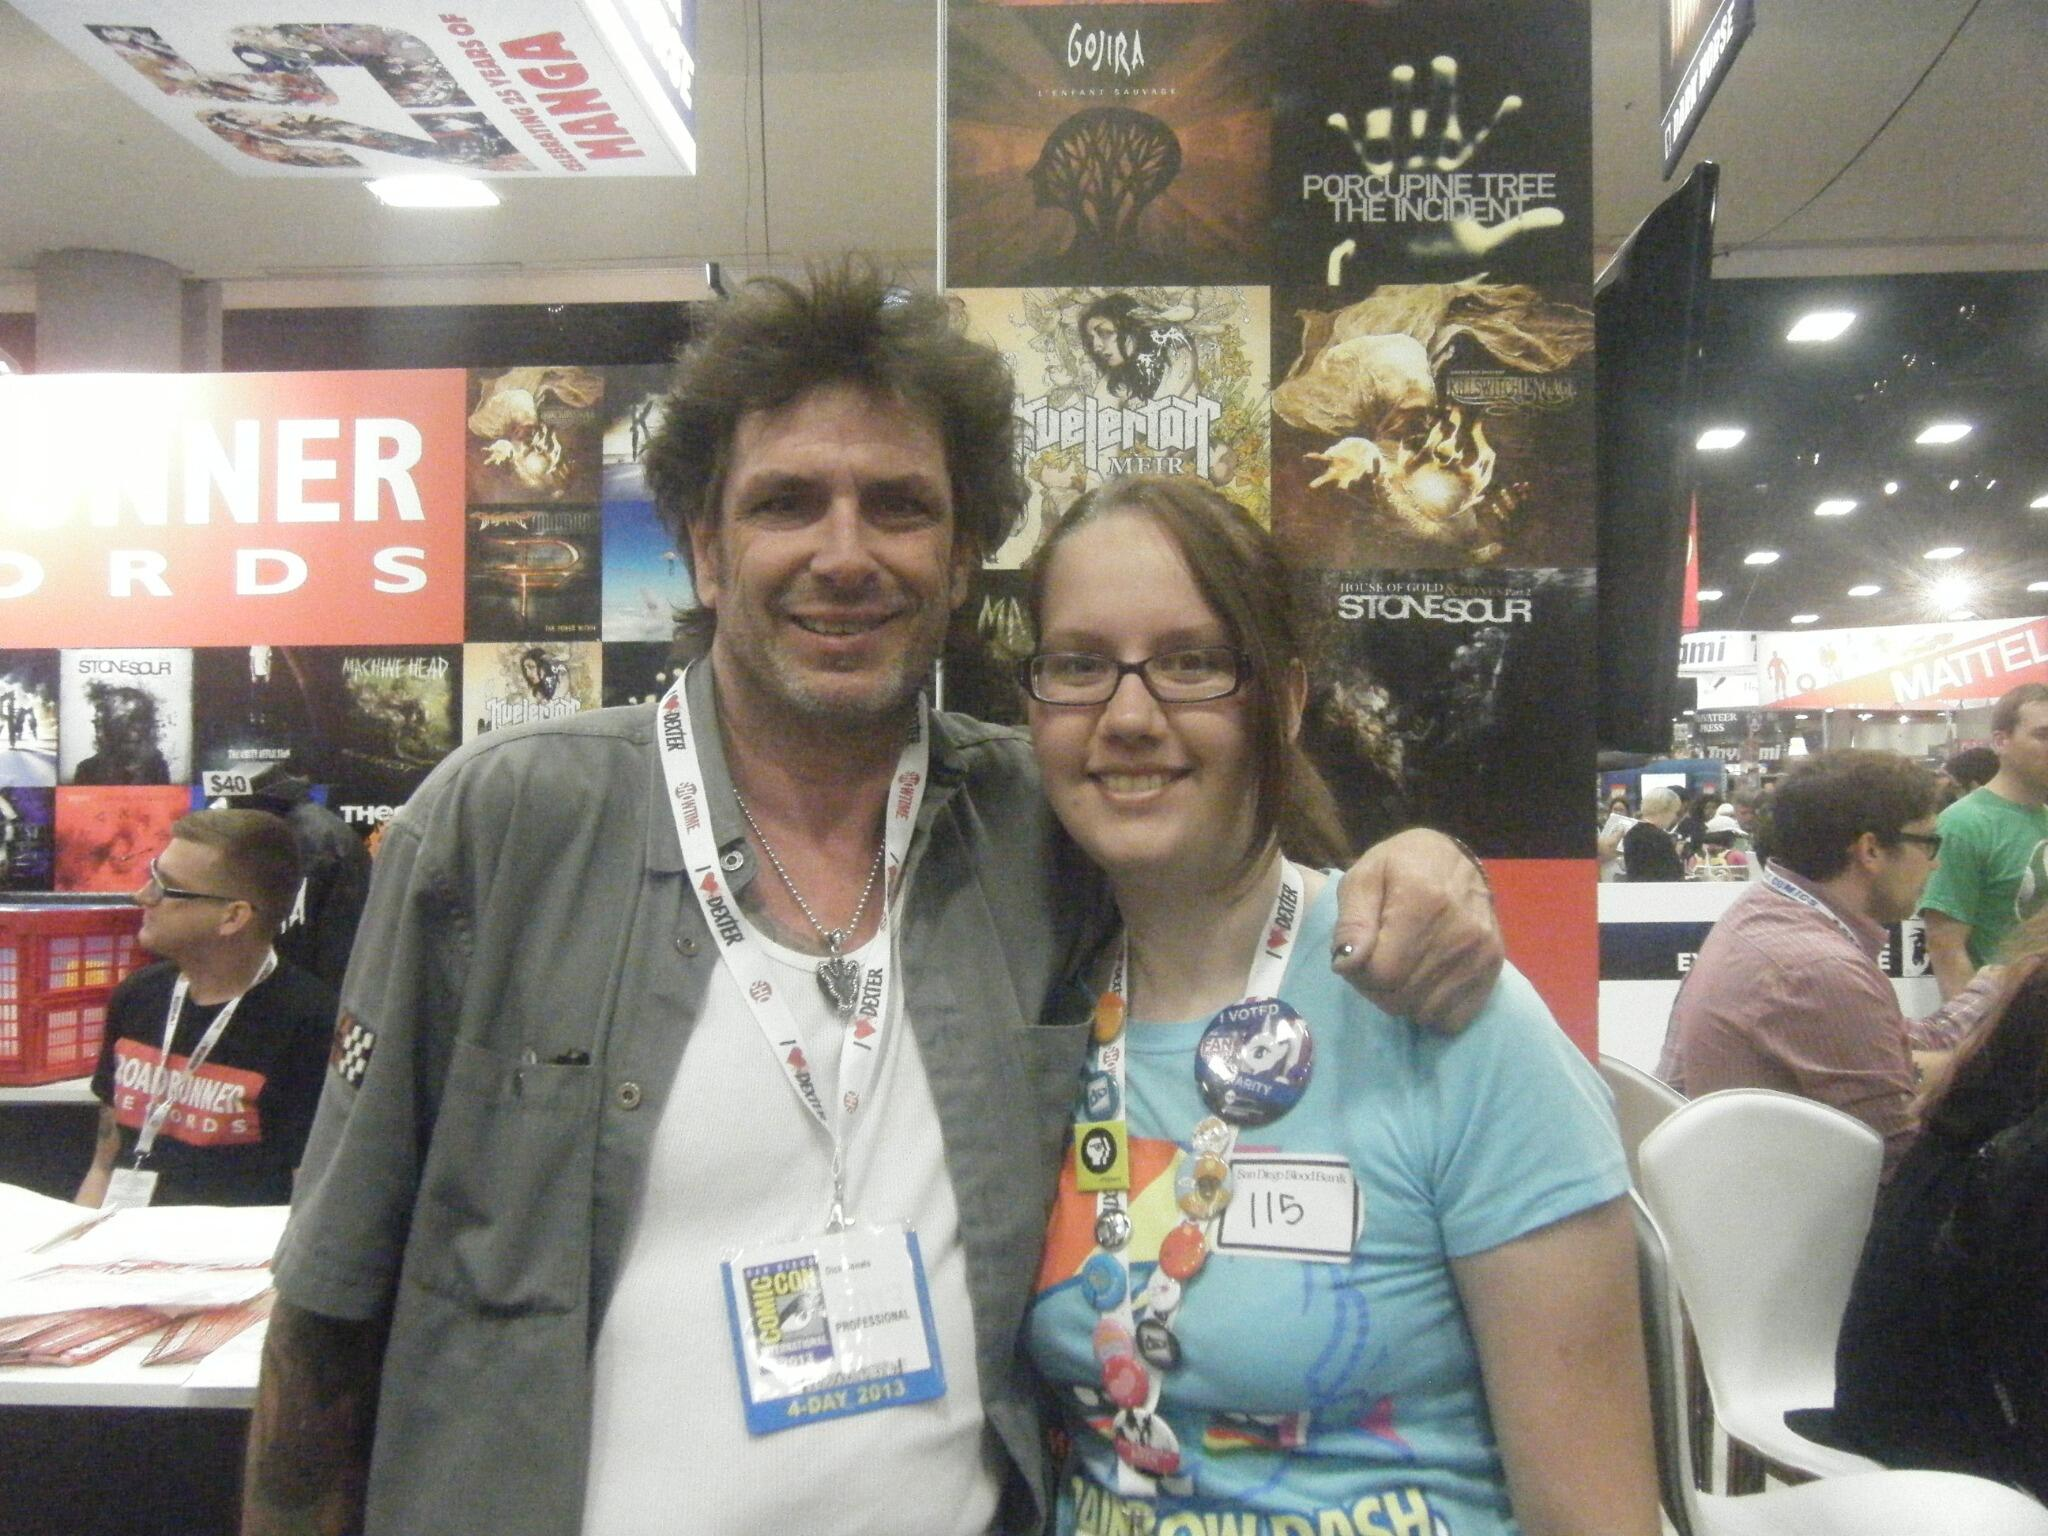 RT @skinXless: I was super excited to meet @EvelDick today! #BB8 #SDCC http://t.co/1SgLVoD6W2